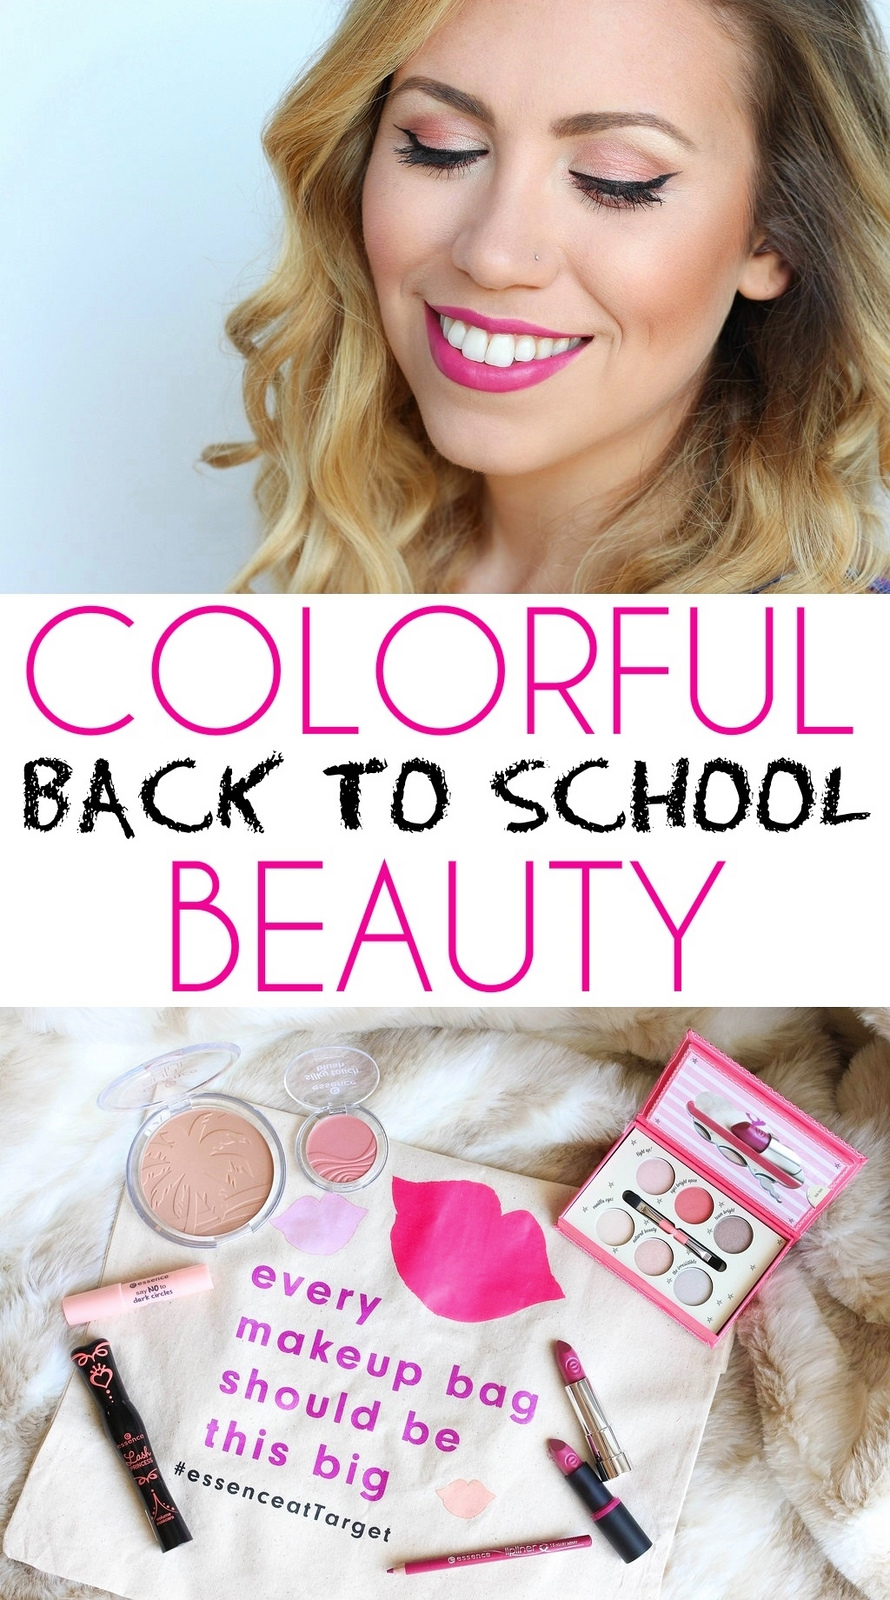 Makeup Monday: Colorful Back to School Beauty